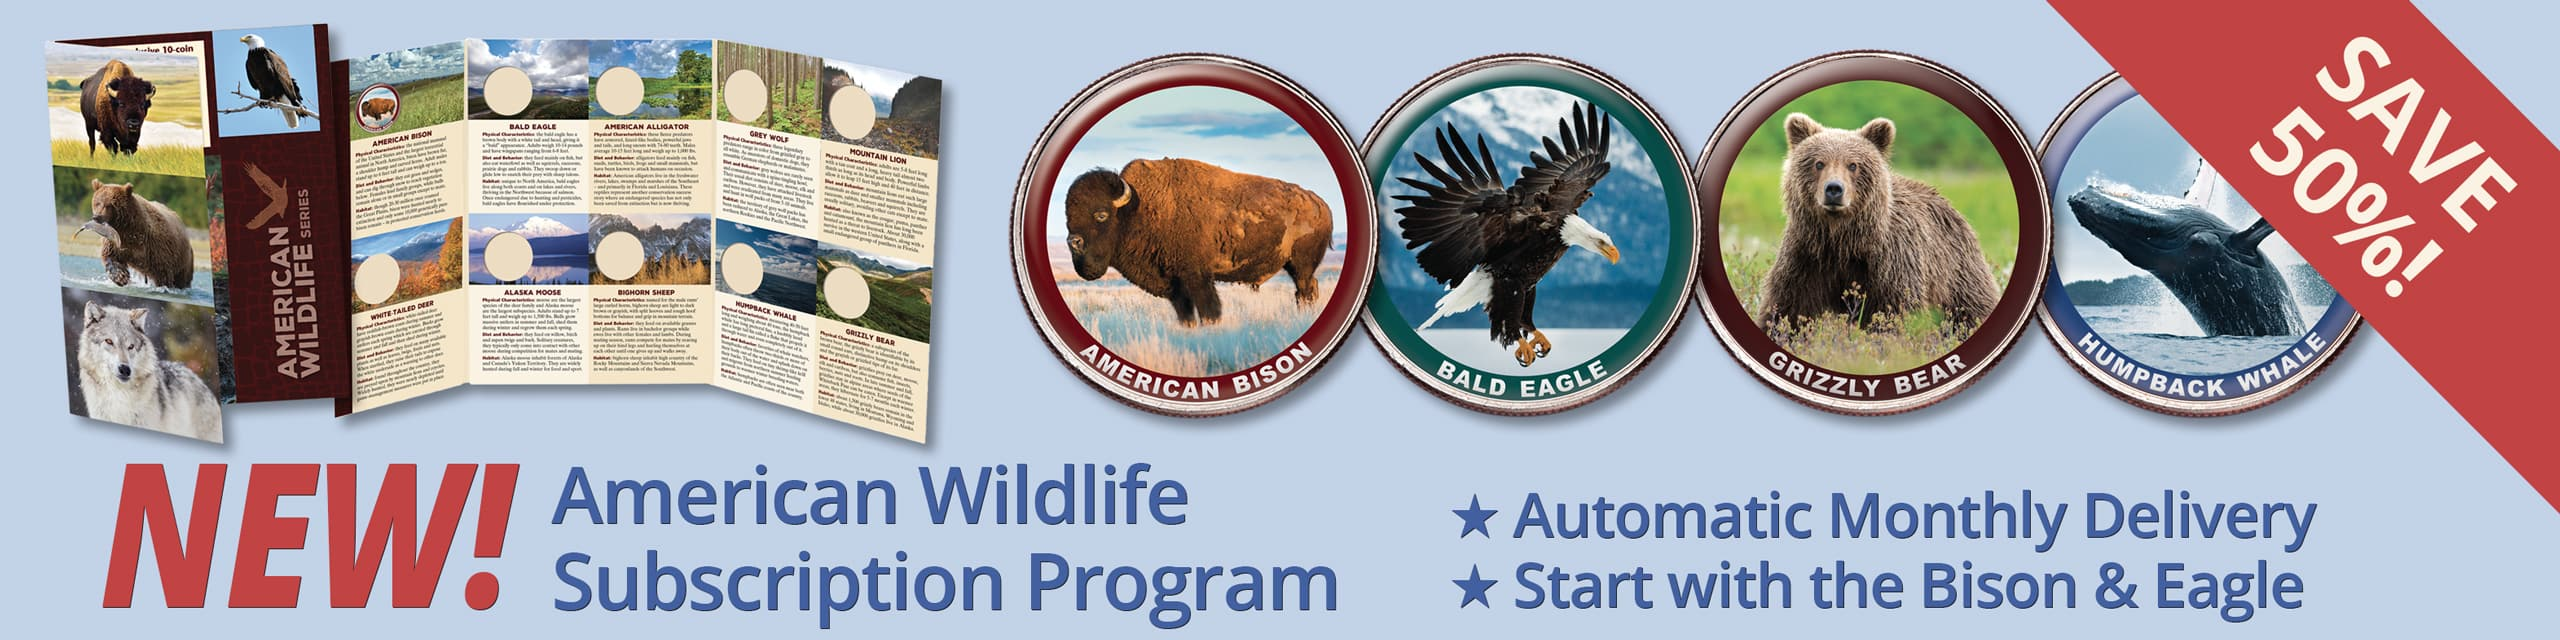 NEW! American Wildlife Subscription Program - Automatic Monthly Delivery - Start with the Bison and Eagle